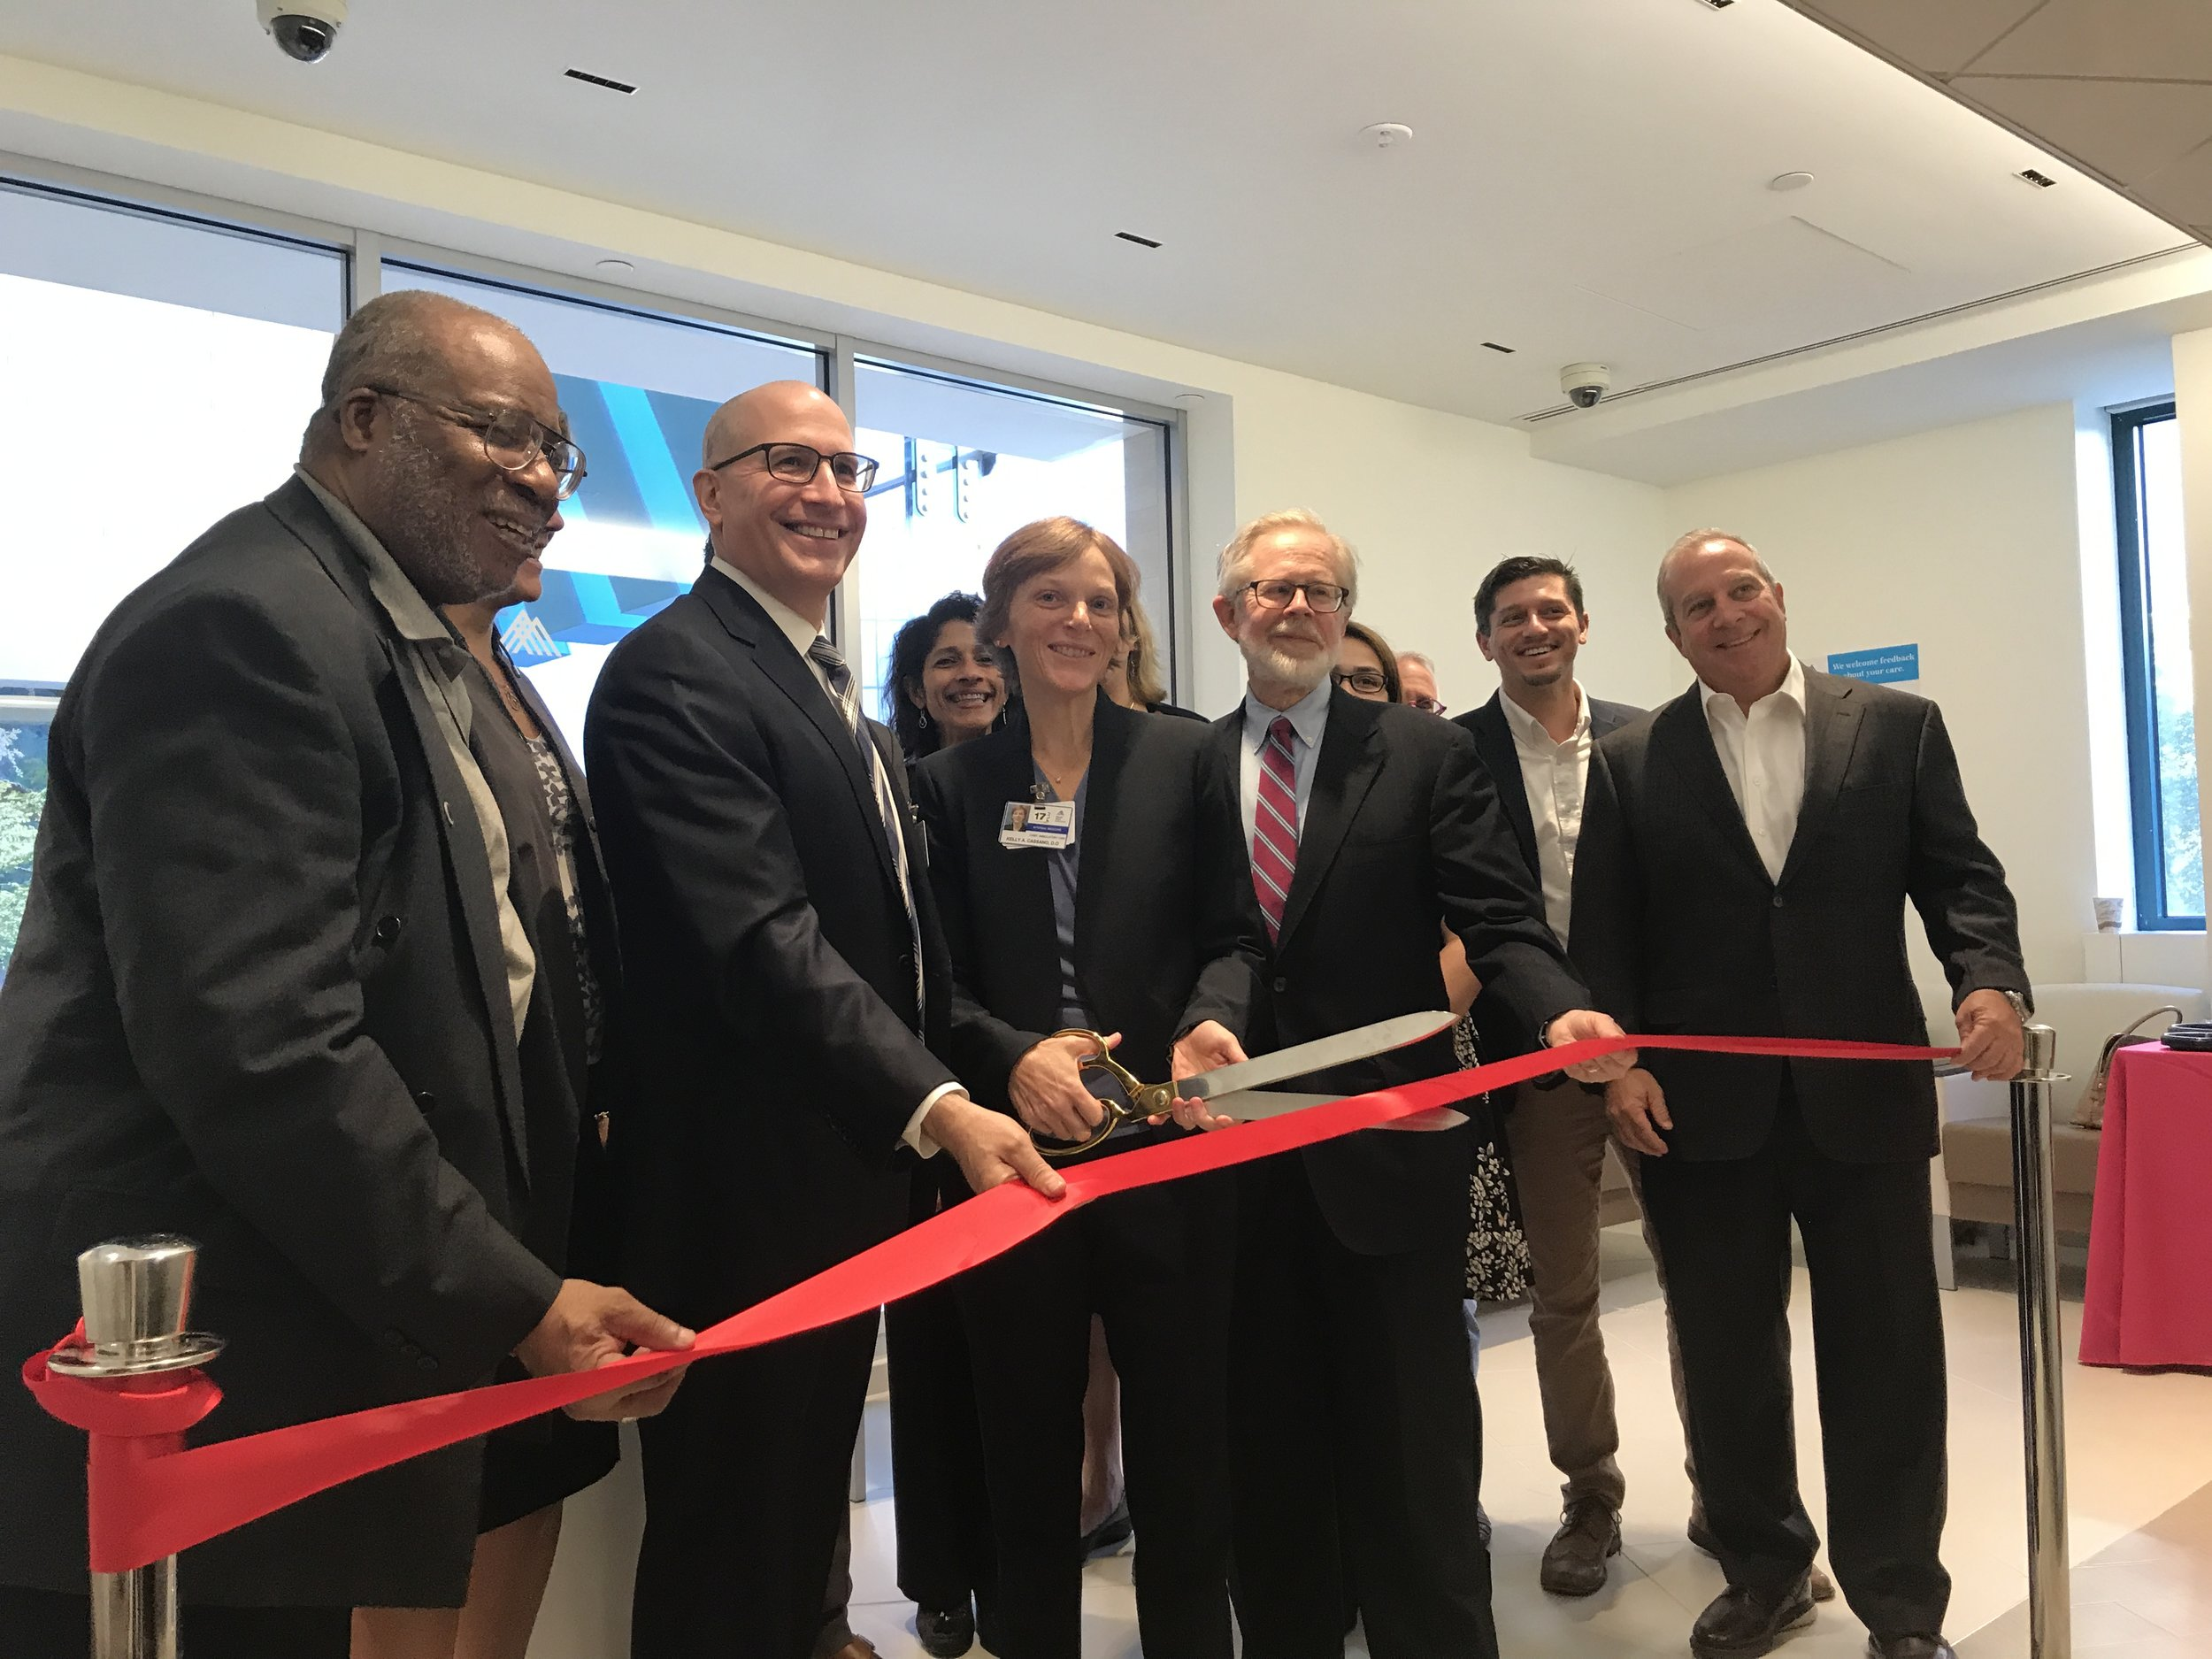 Jeremy Boal, M.D.,President of Mount Sinai Downtown is joined by his team and community members to celebrate the opening of the new Urgent Care Center in Union Square.